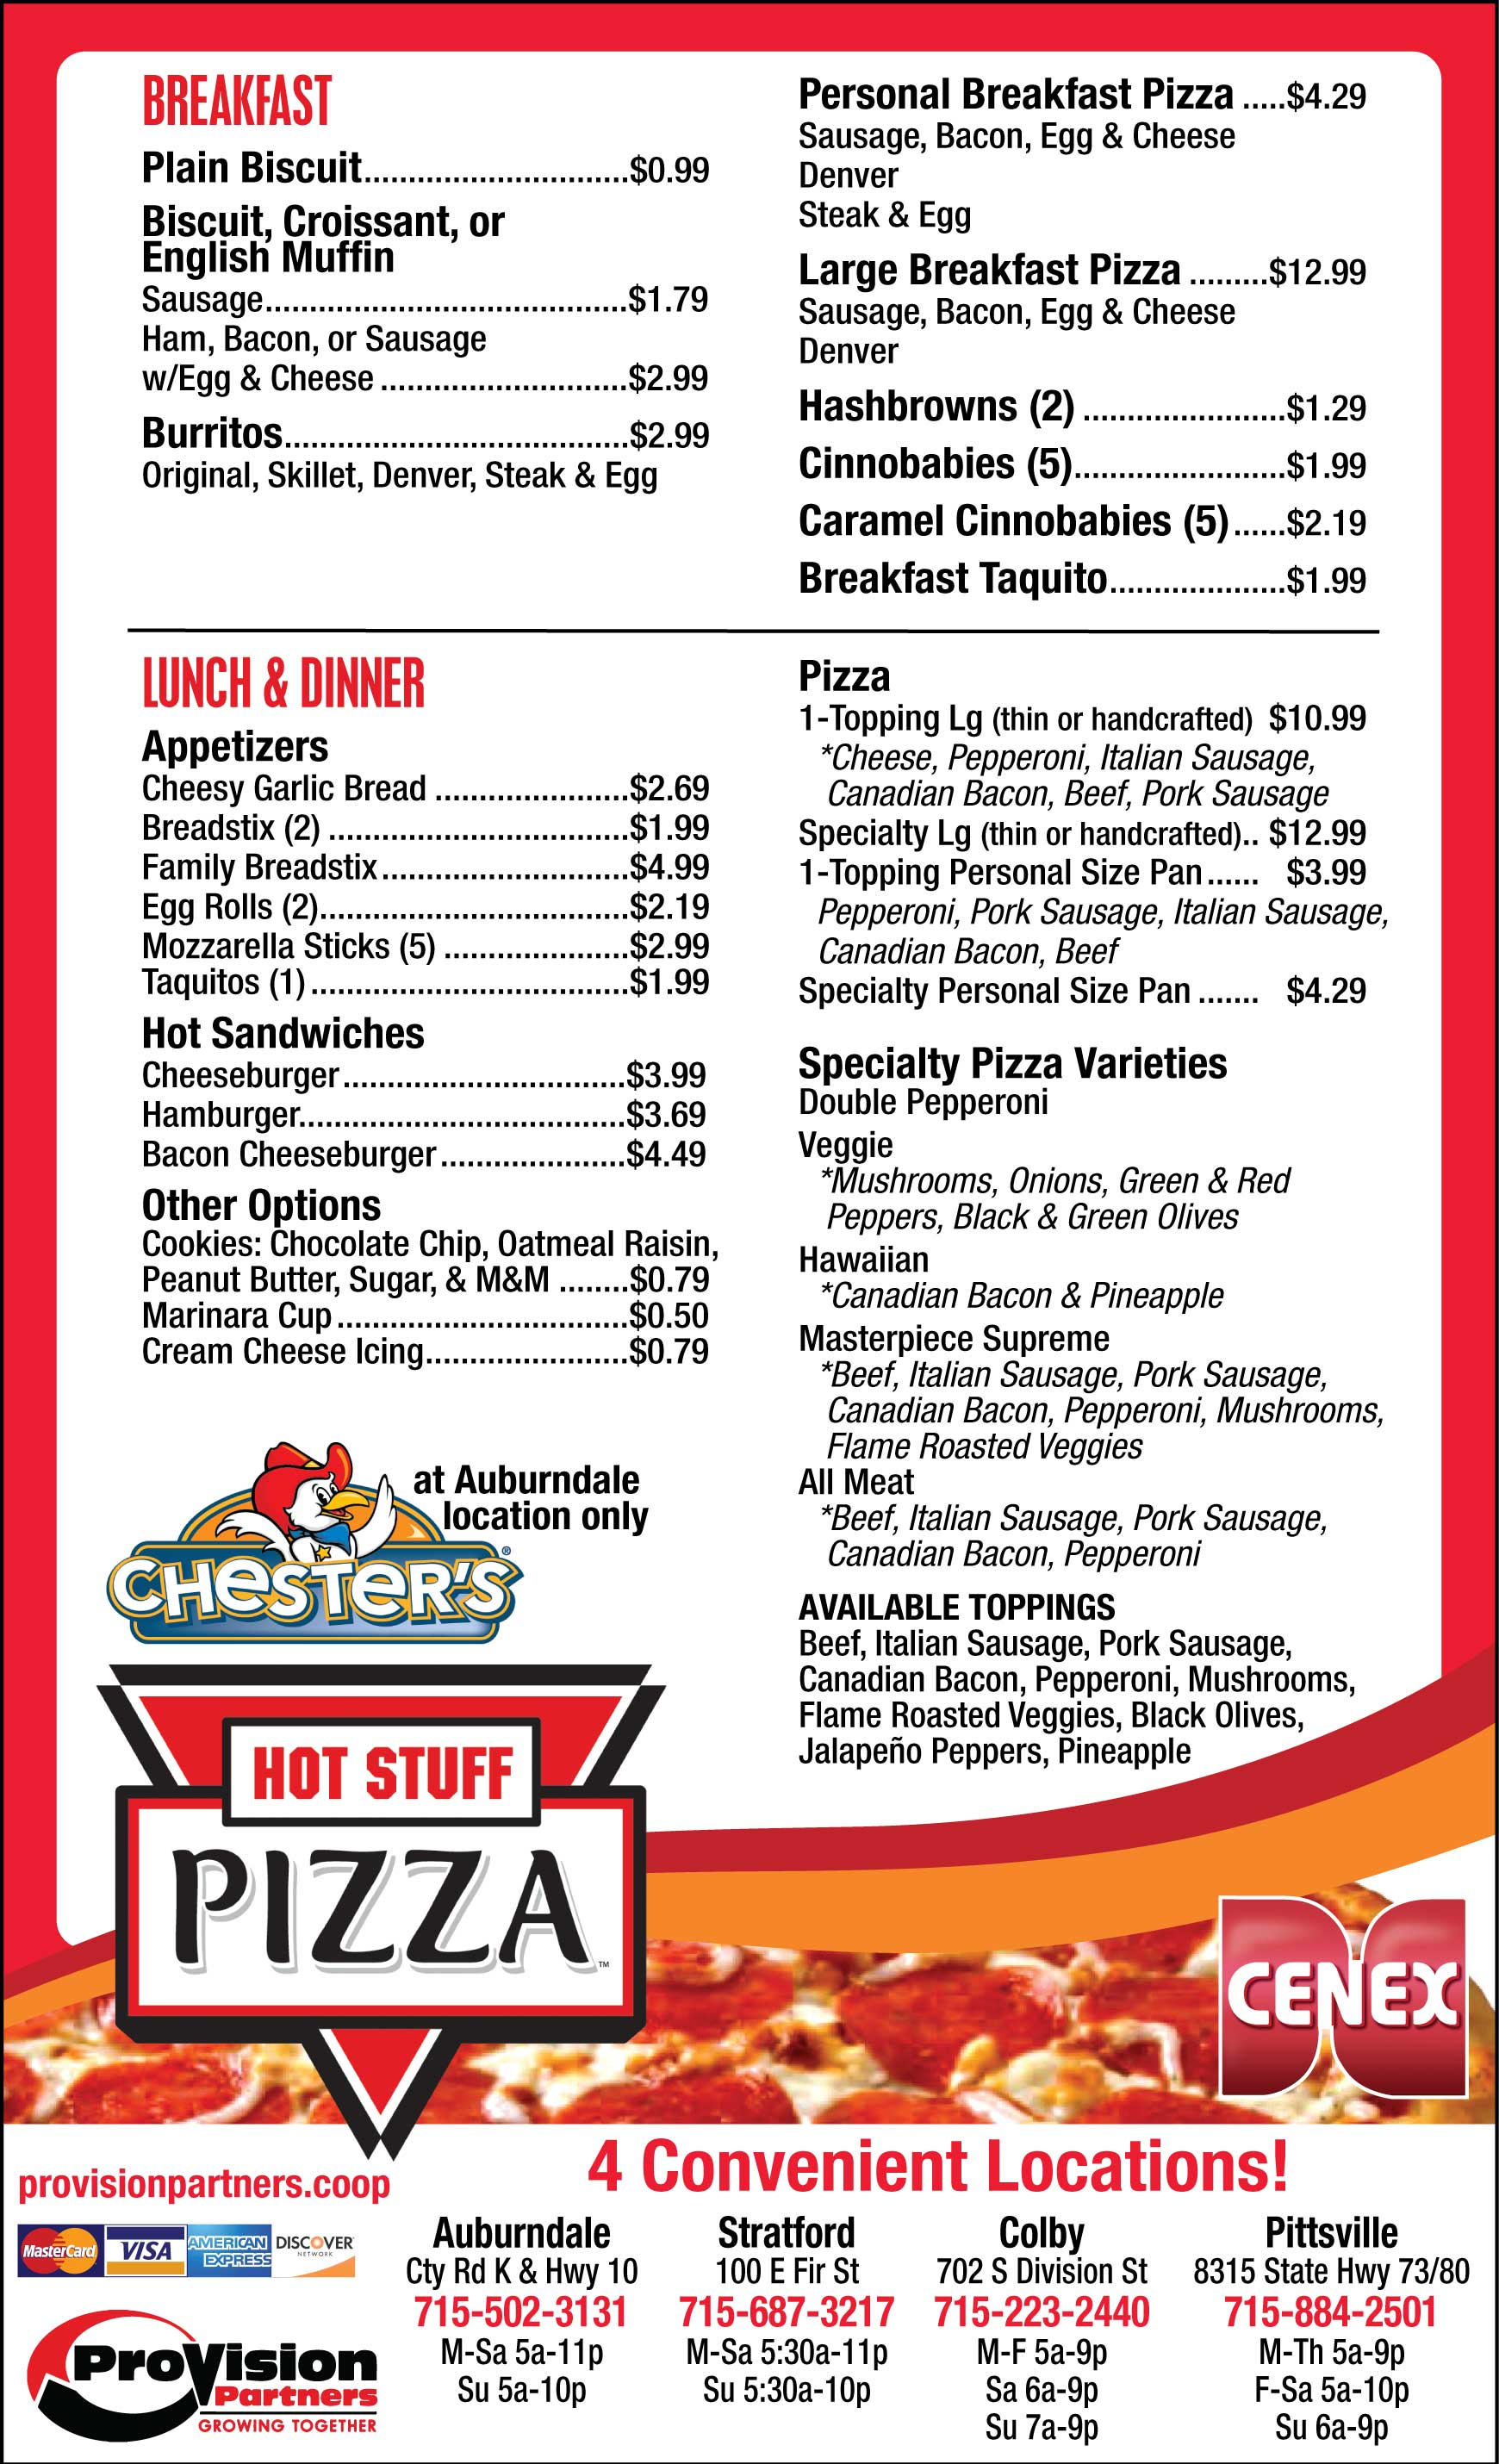 Hot Stuff Pizza Cenex Convenience Store Menu